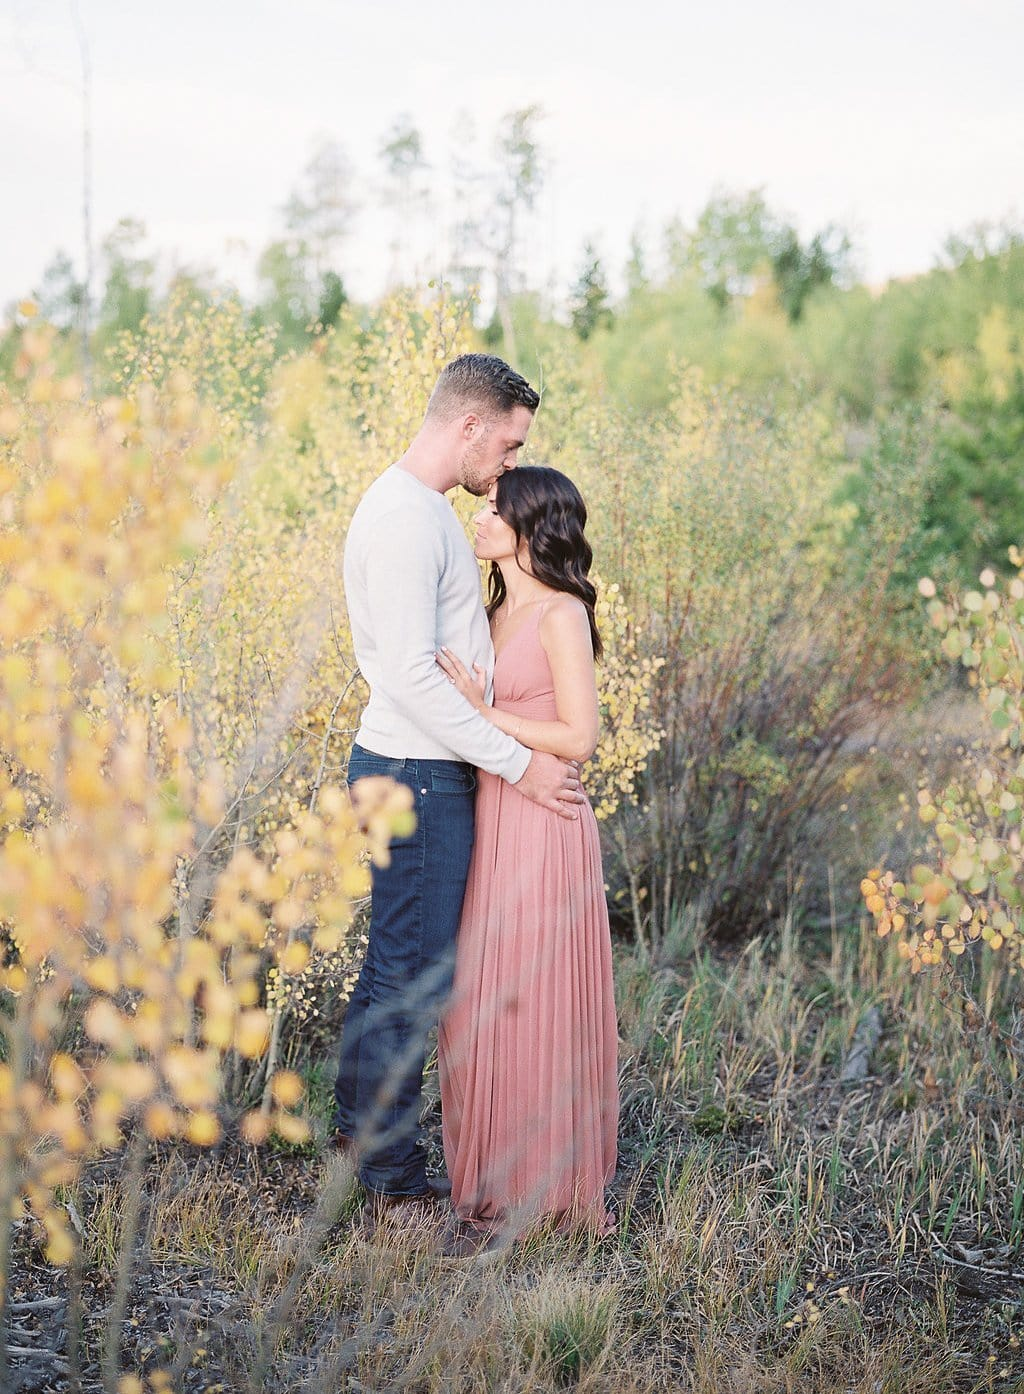 Lake Dillon, Colorado Engagement Photography groom and bride embracing amongst the fall leaves